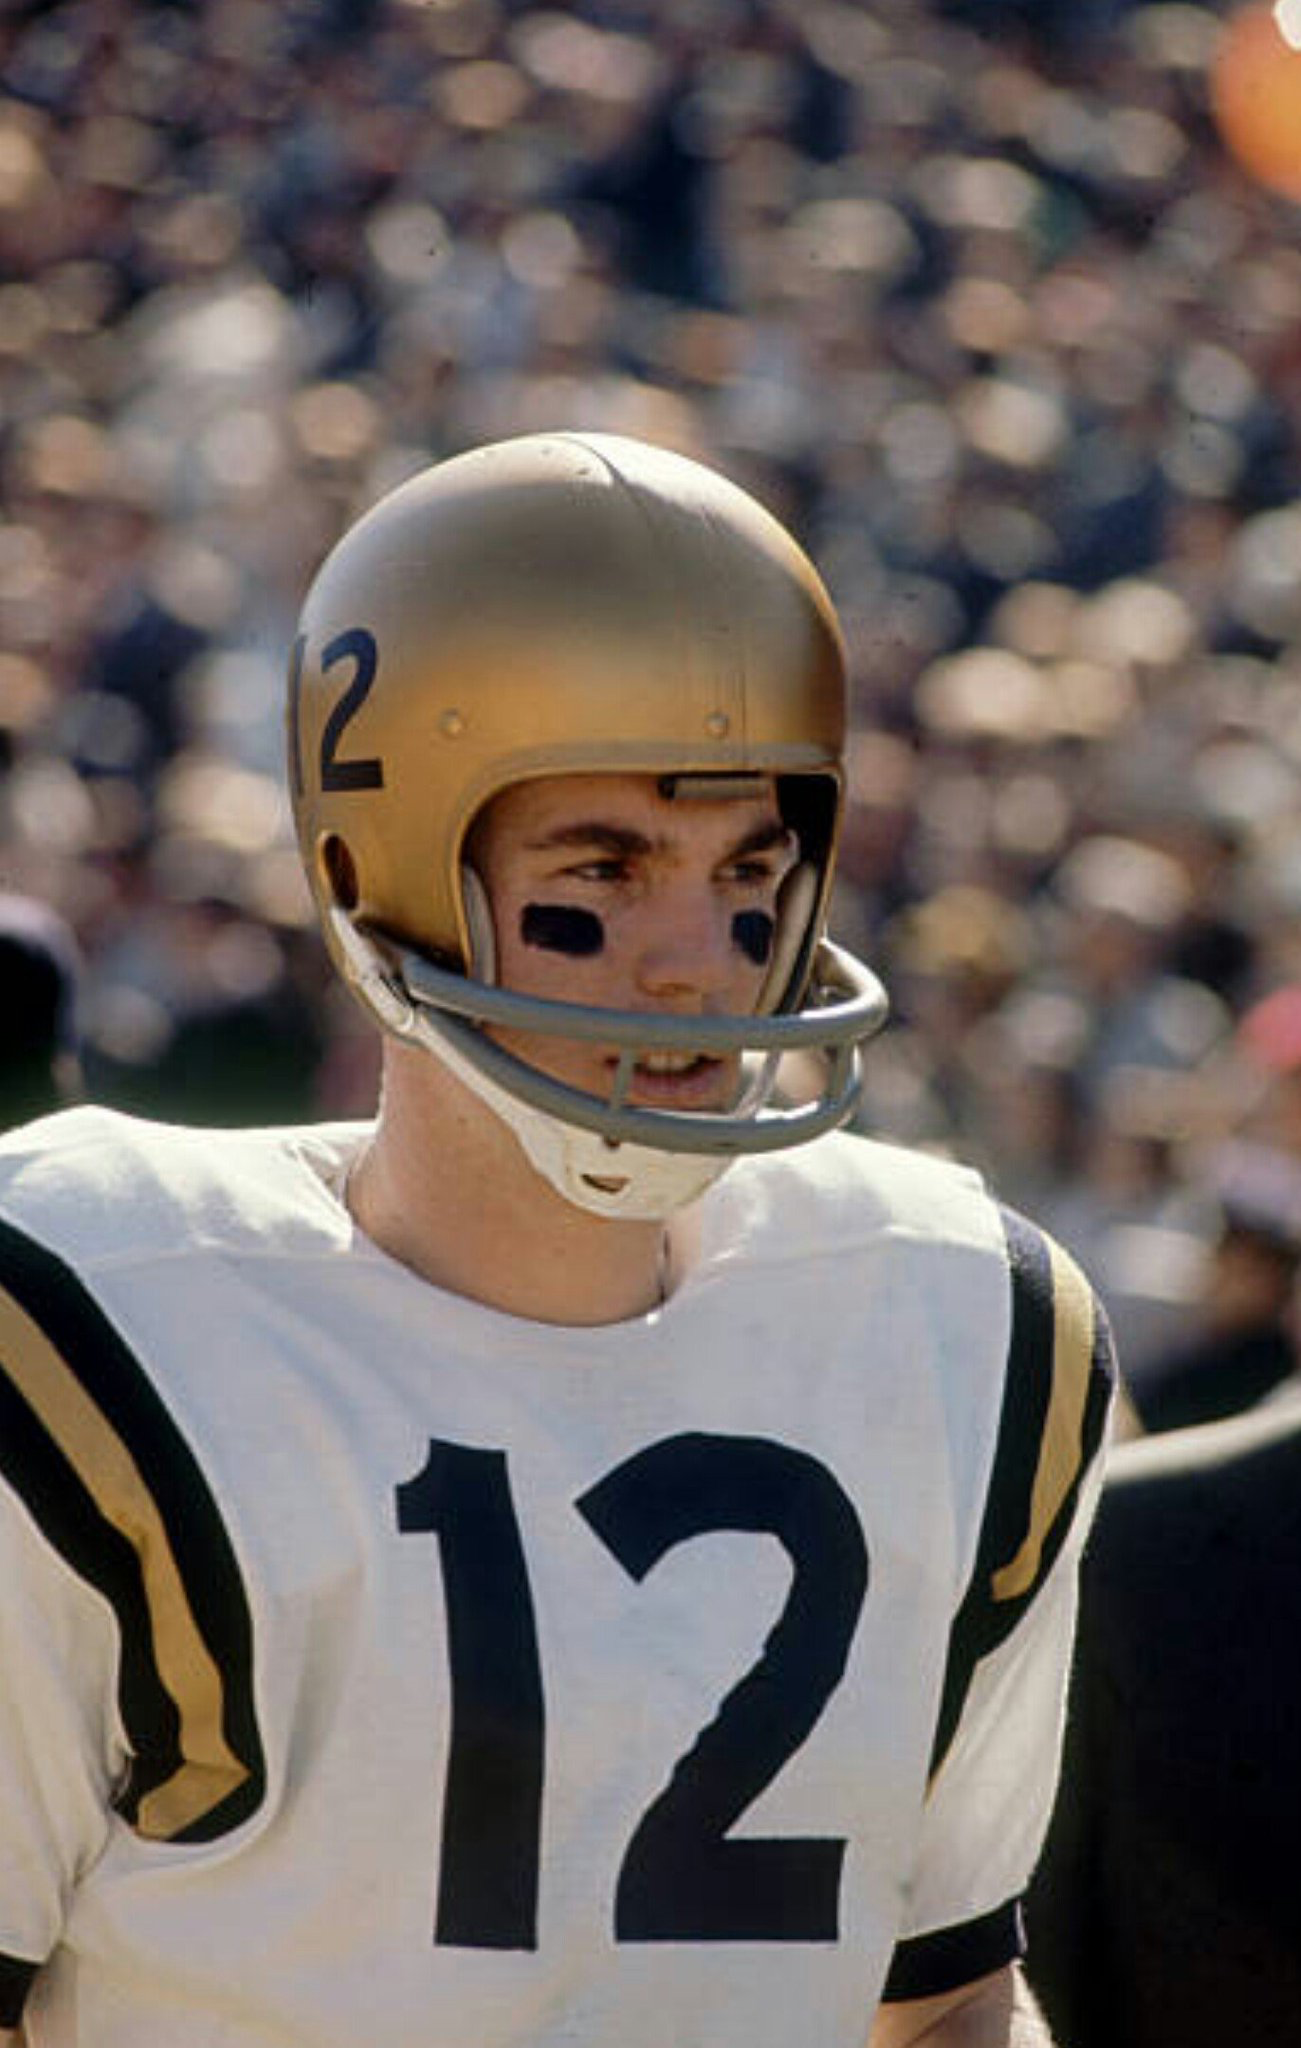 15b4bacbe83 QB Roger Staubach, Navy, Heisman Trophy winner, later NFL Hall Of Fame. Find  this Pin and more ...